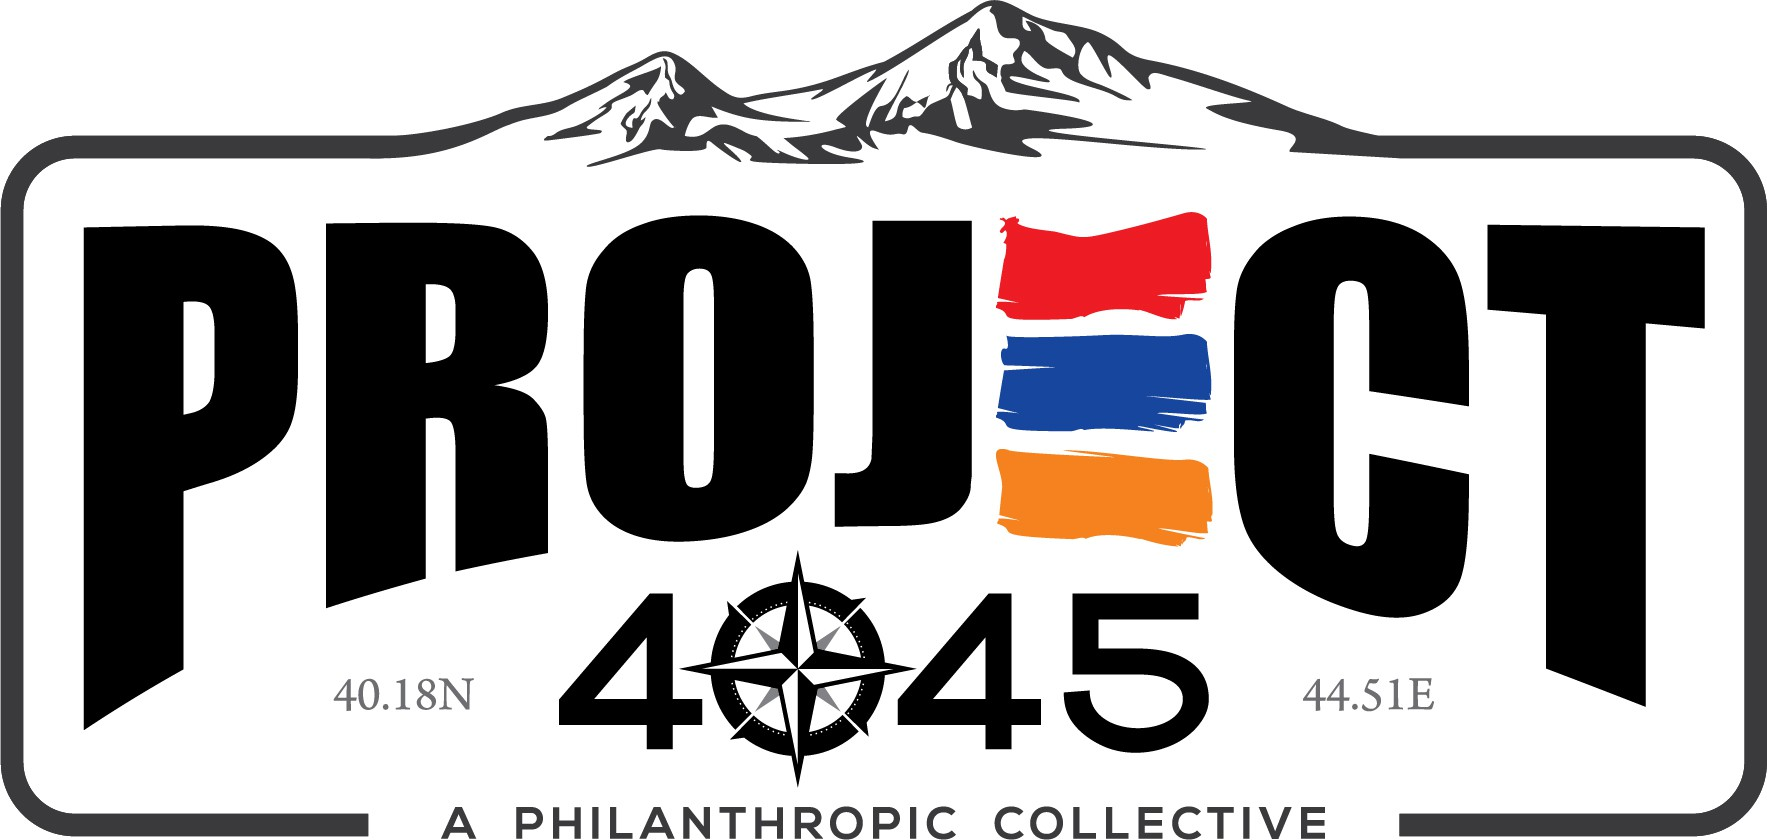 Project 4045 - A Philanthropic Collective